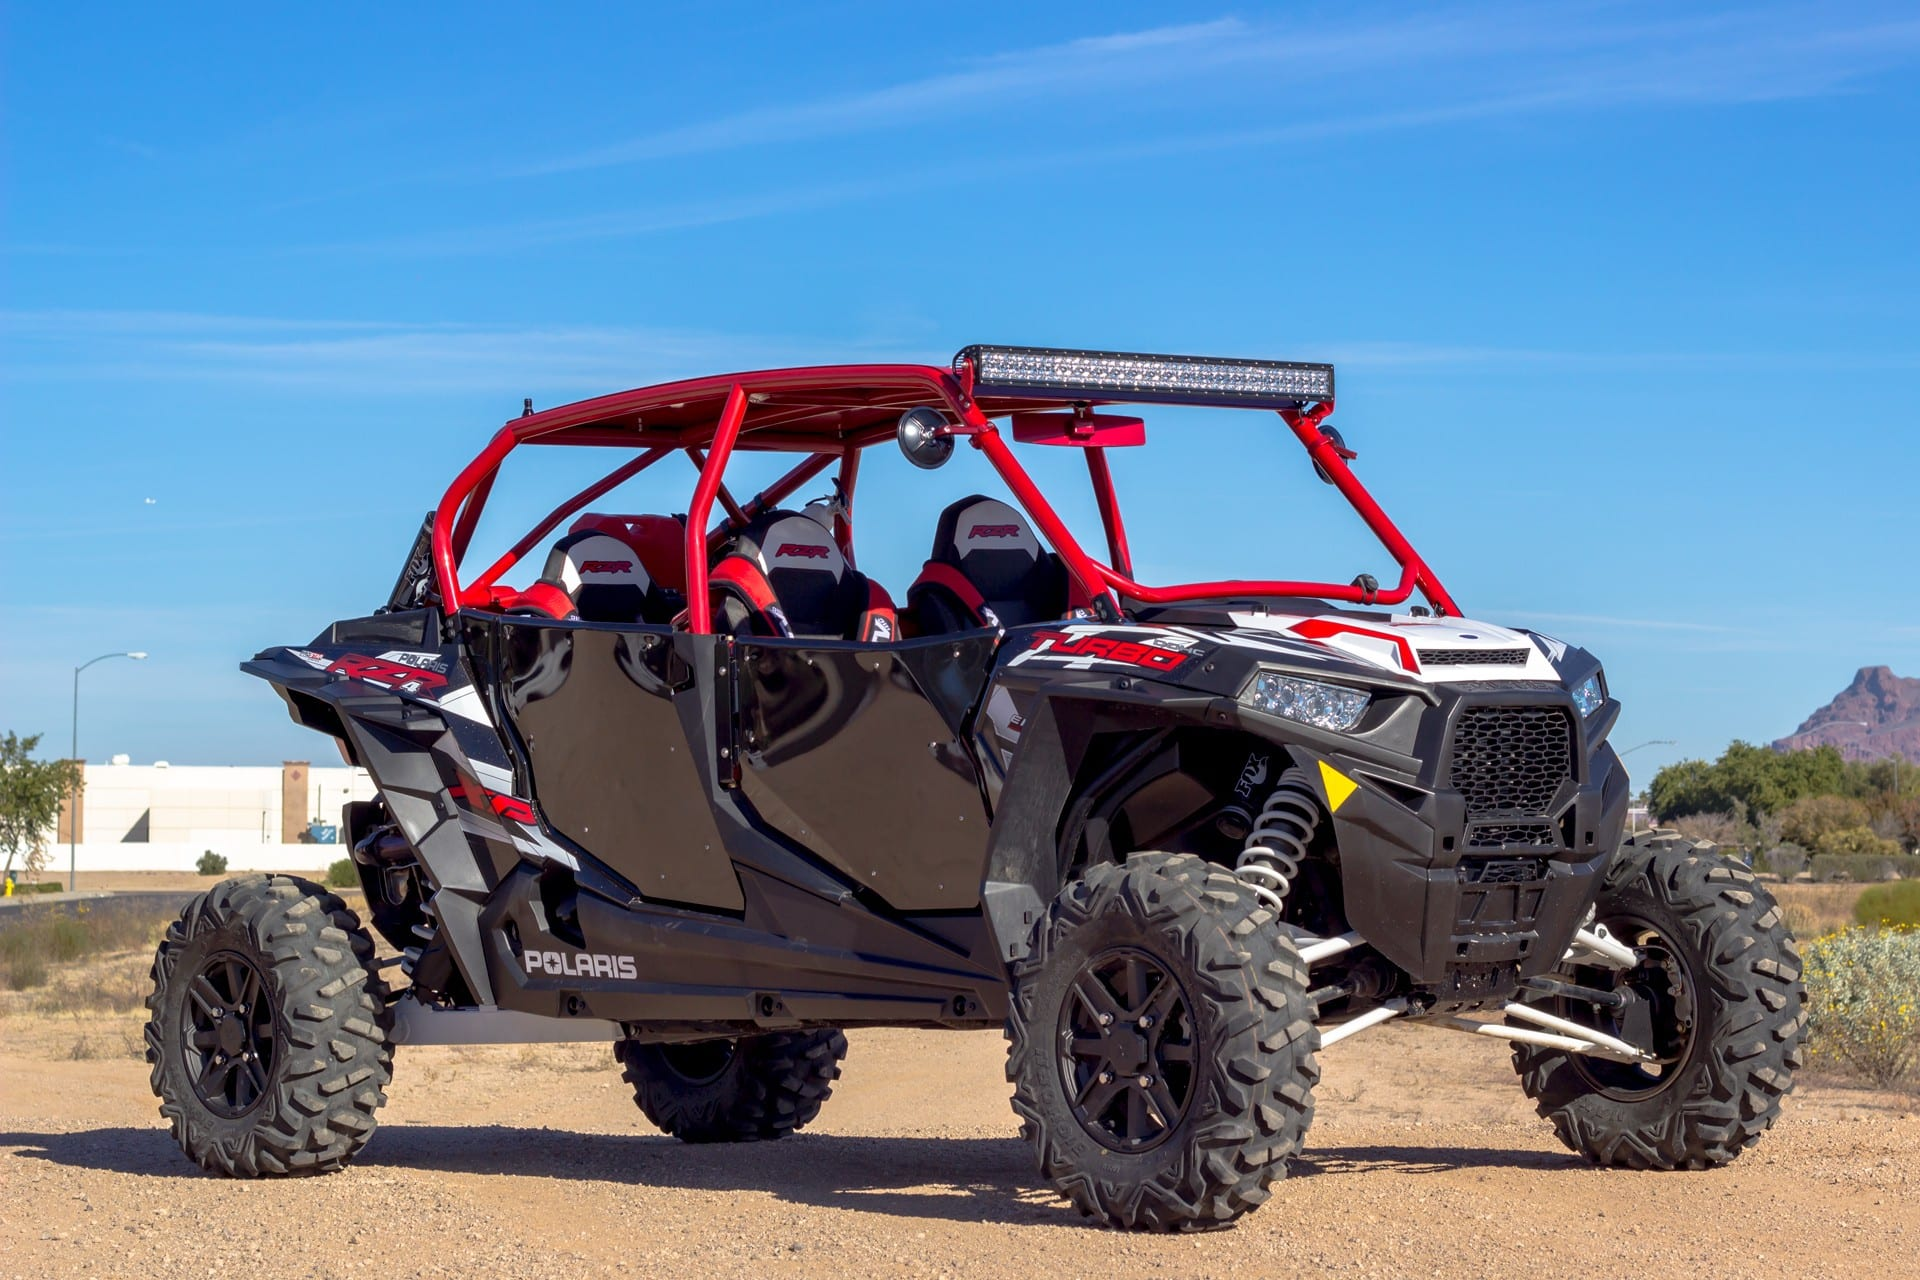 Polaris RZR Turbo Engine Fire Recall